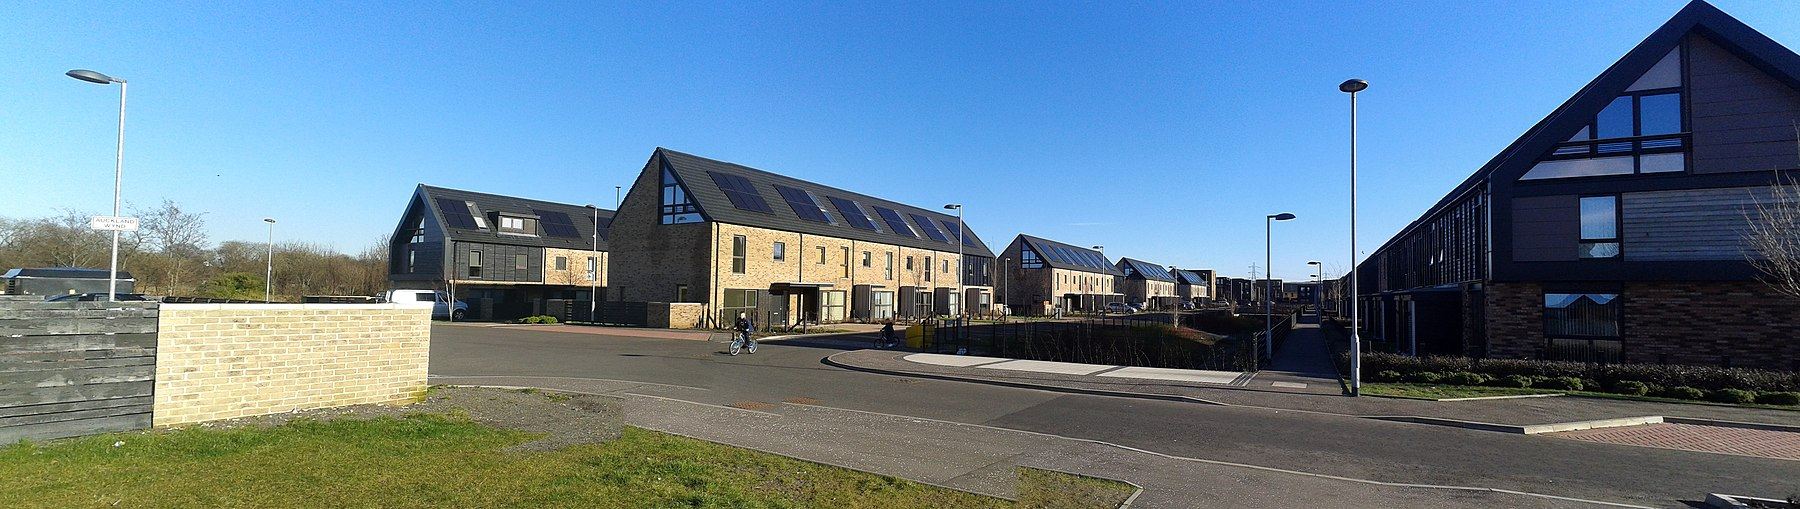 The 2014 Commonwealth Games athlete's village at Dalmarnock, Glasgow Auckland Wynd, Dalmarnock 2016-03-07.jpg